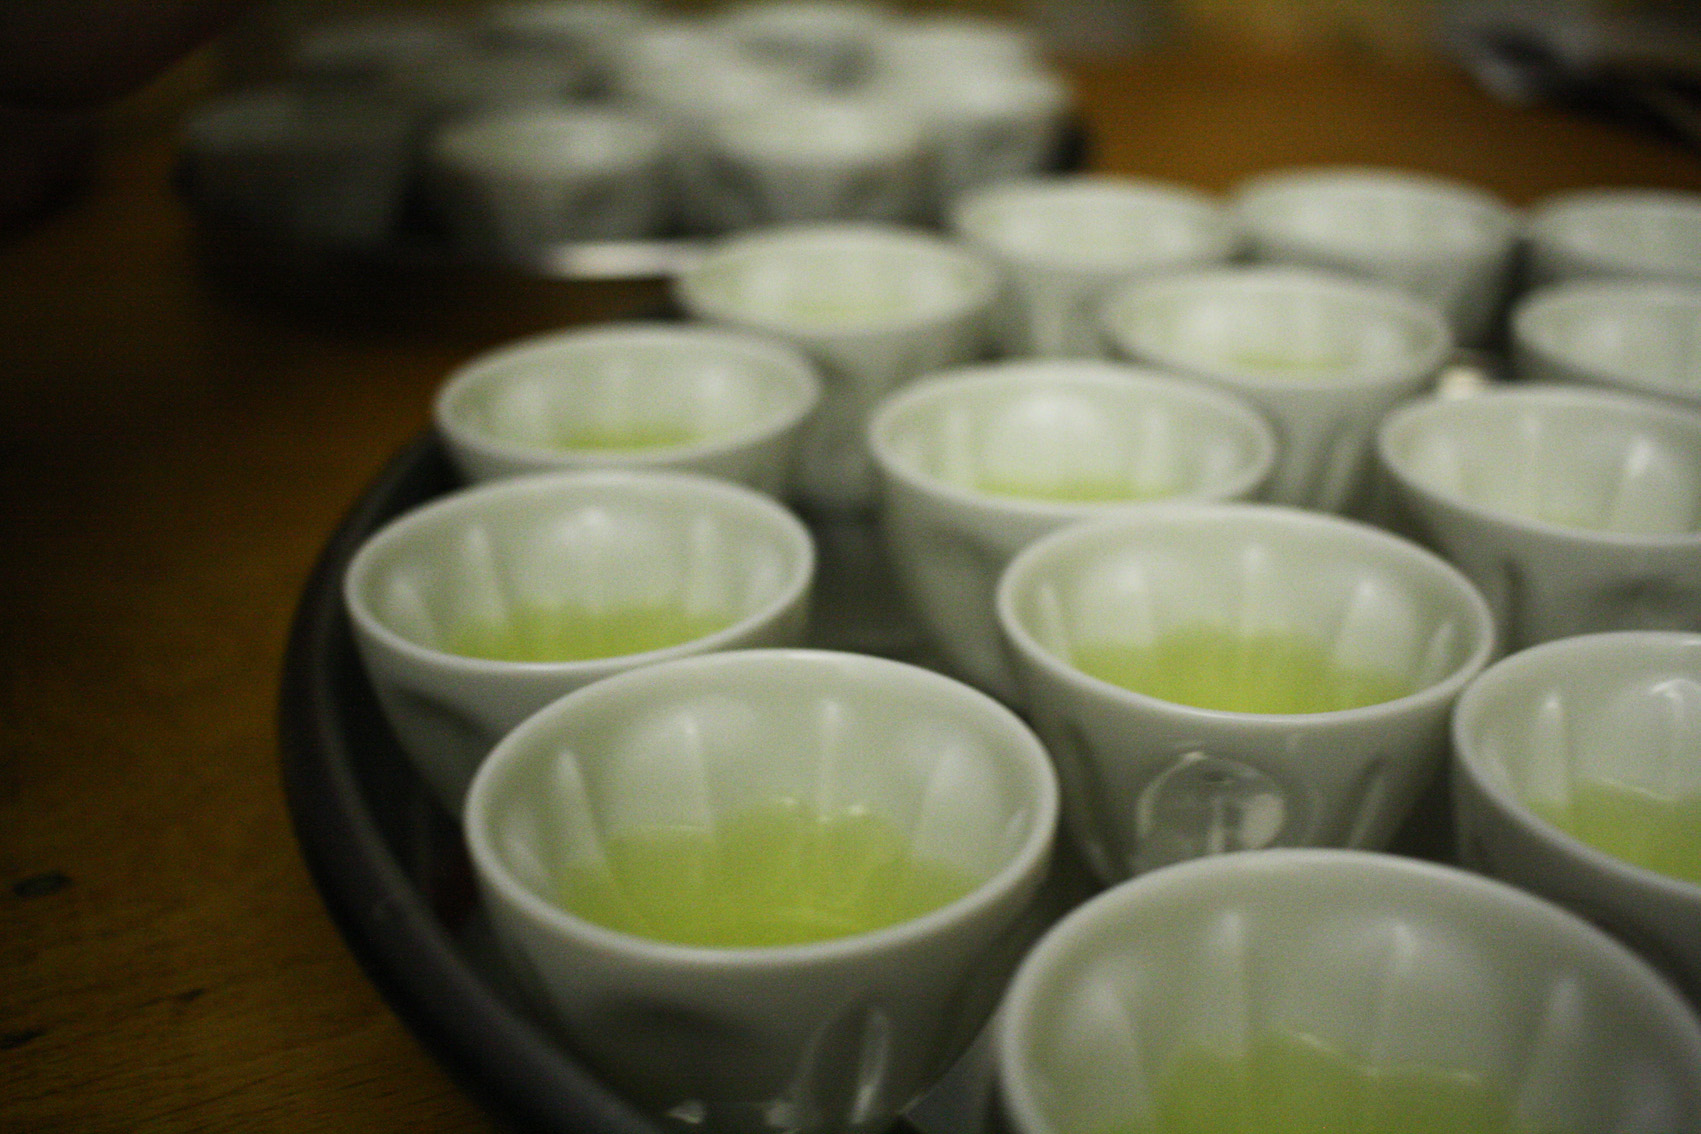 Sakura-Mini tea cups filled with Kirishima Tokujou Sencha